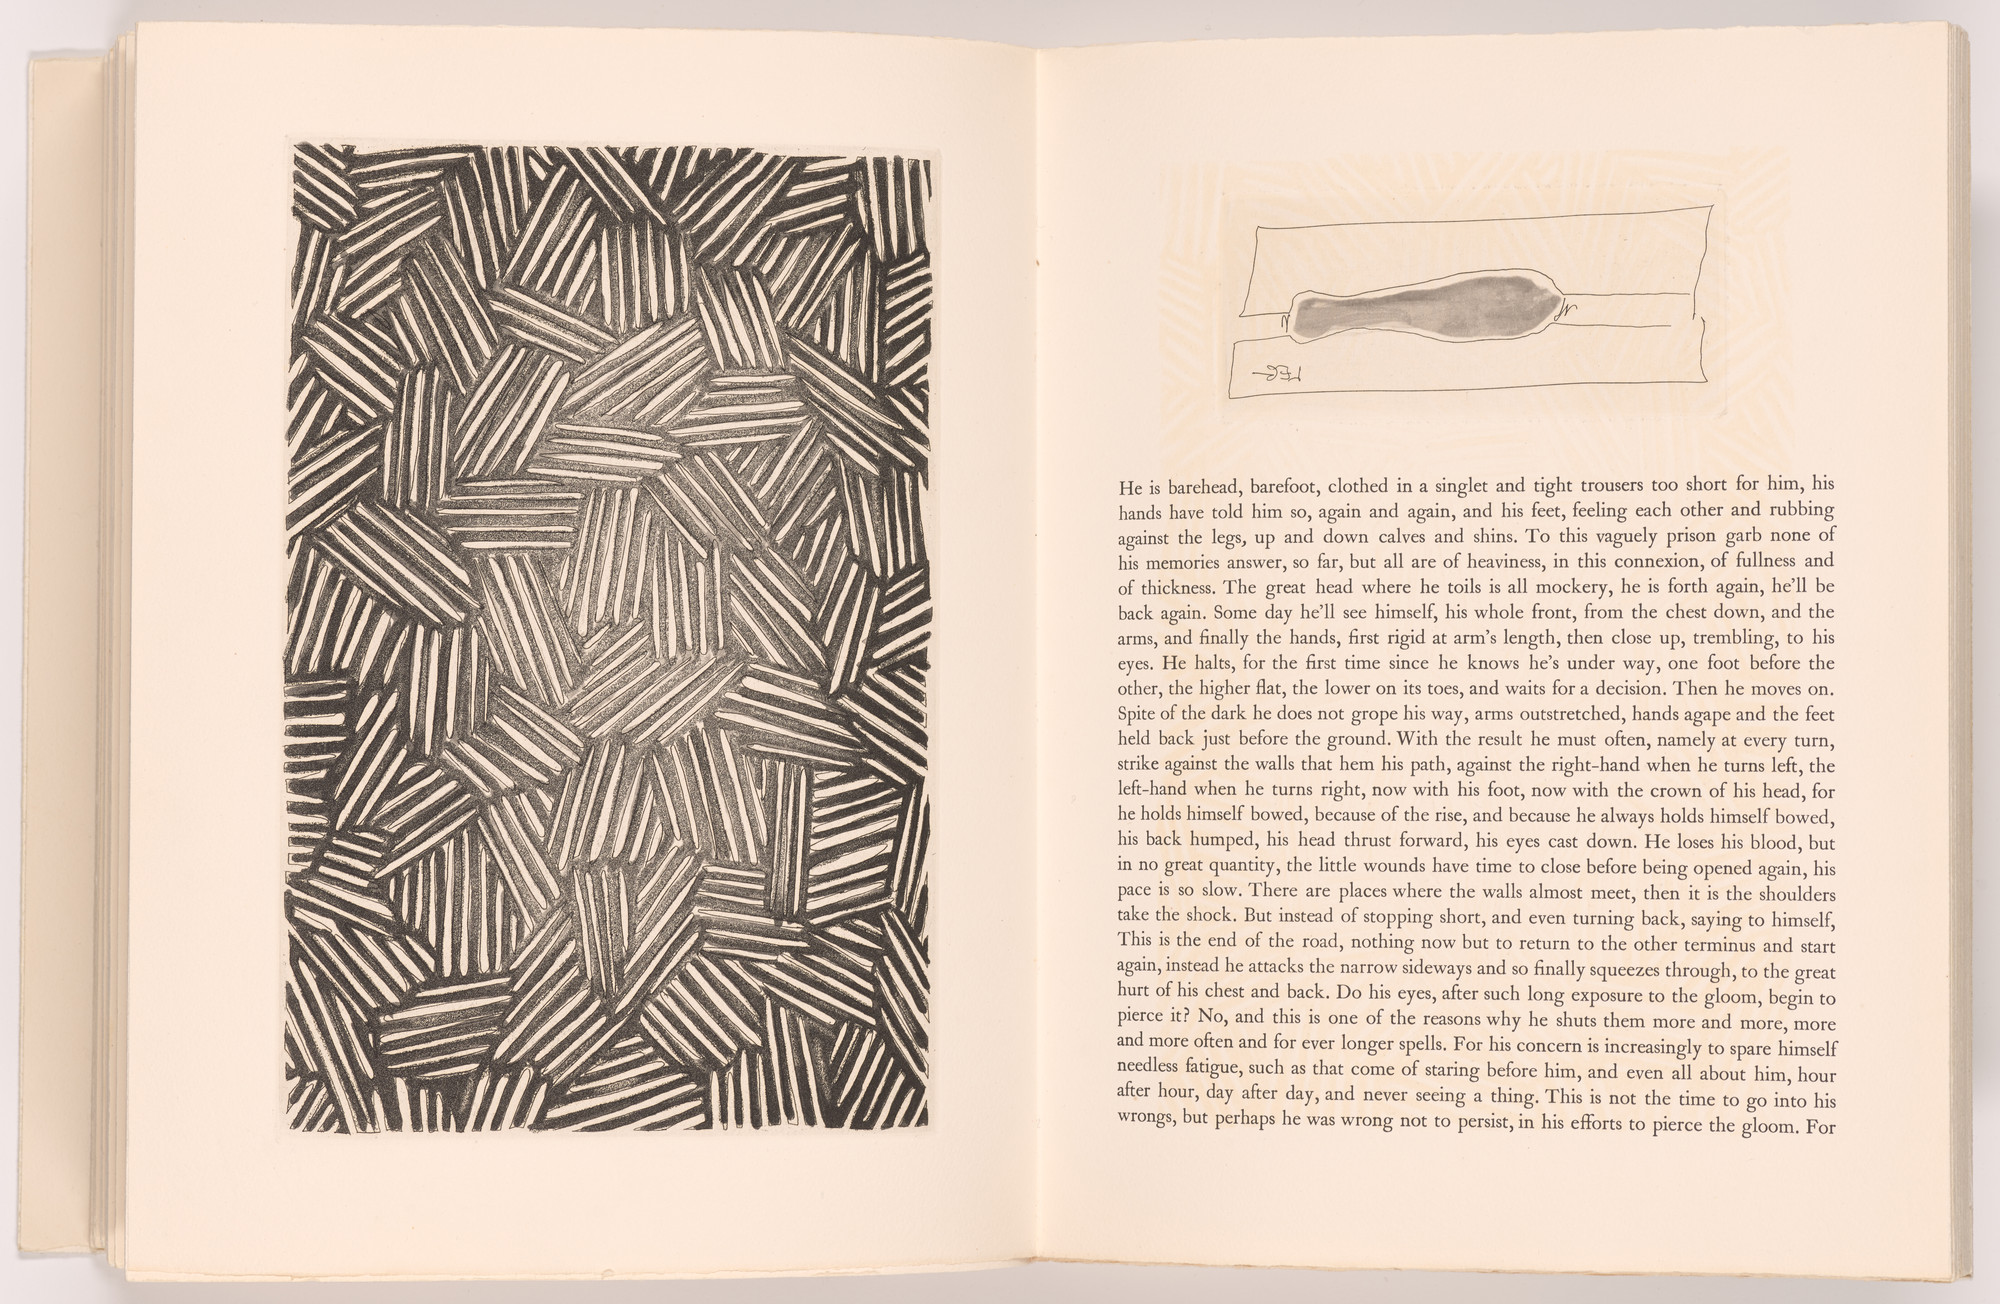 Jasper Johns. Leg (d) (headpiece, folio 12) from Foirades/Fizzles. 1975–76, published 1976